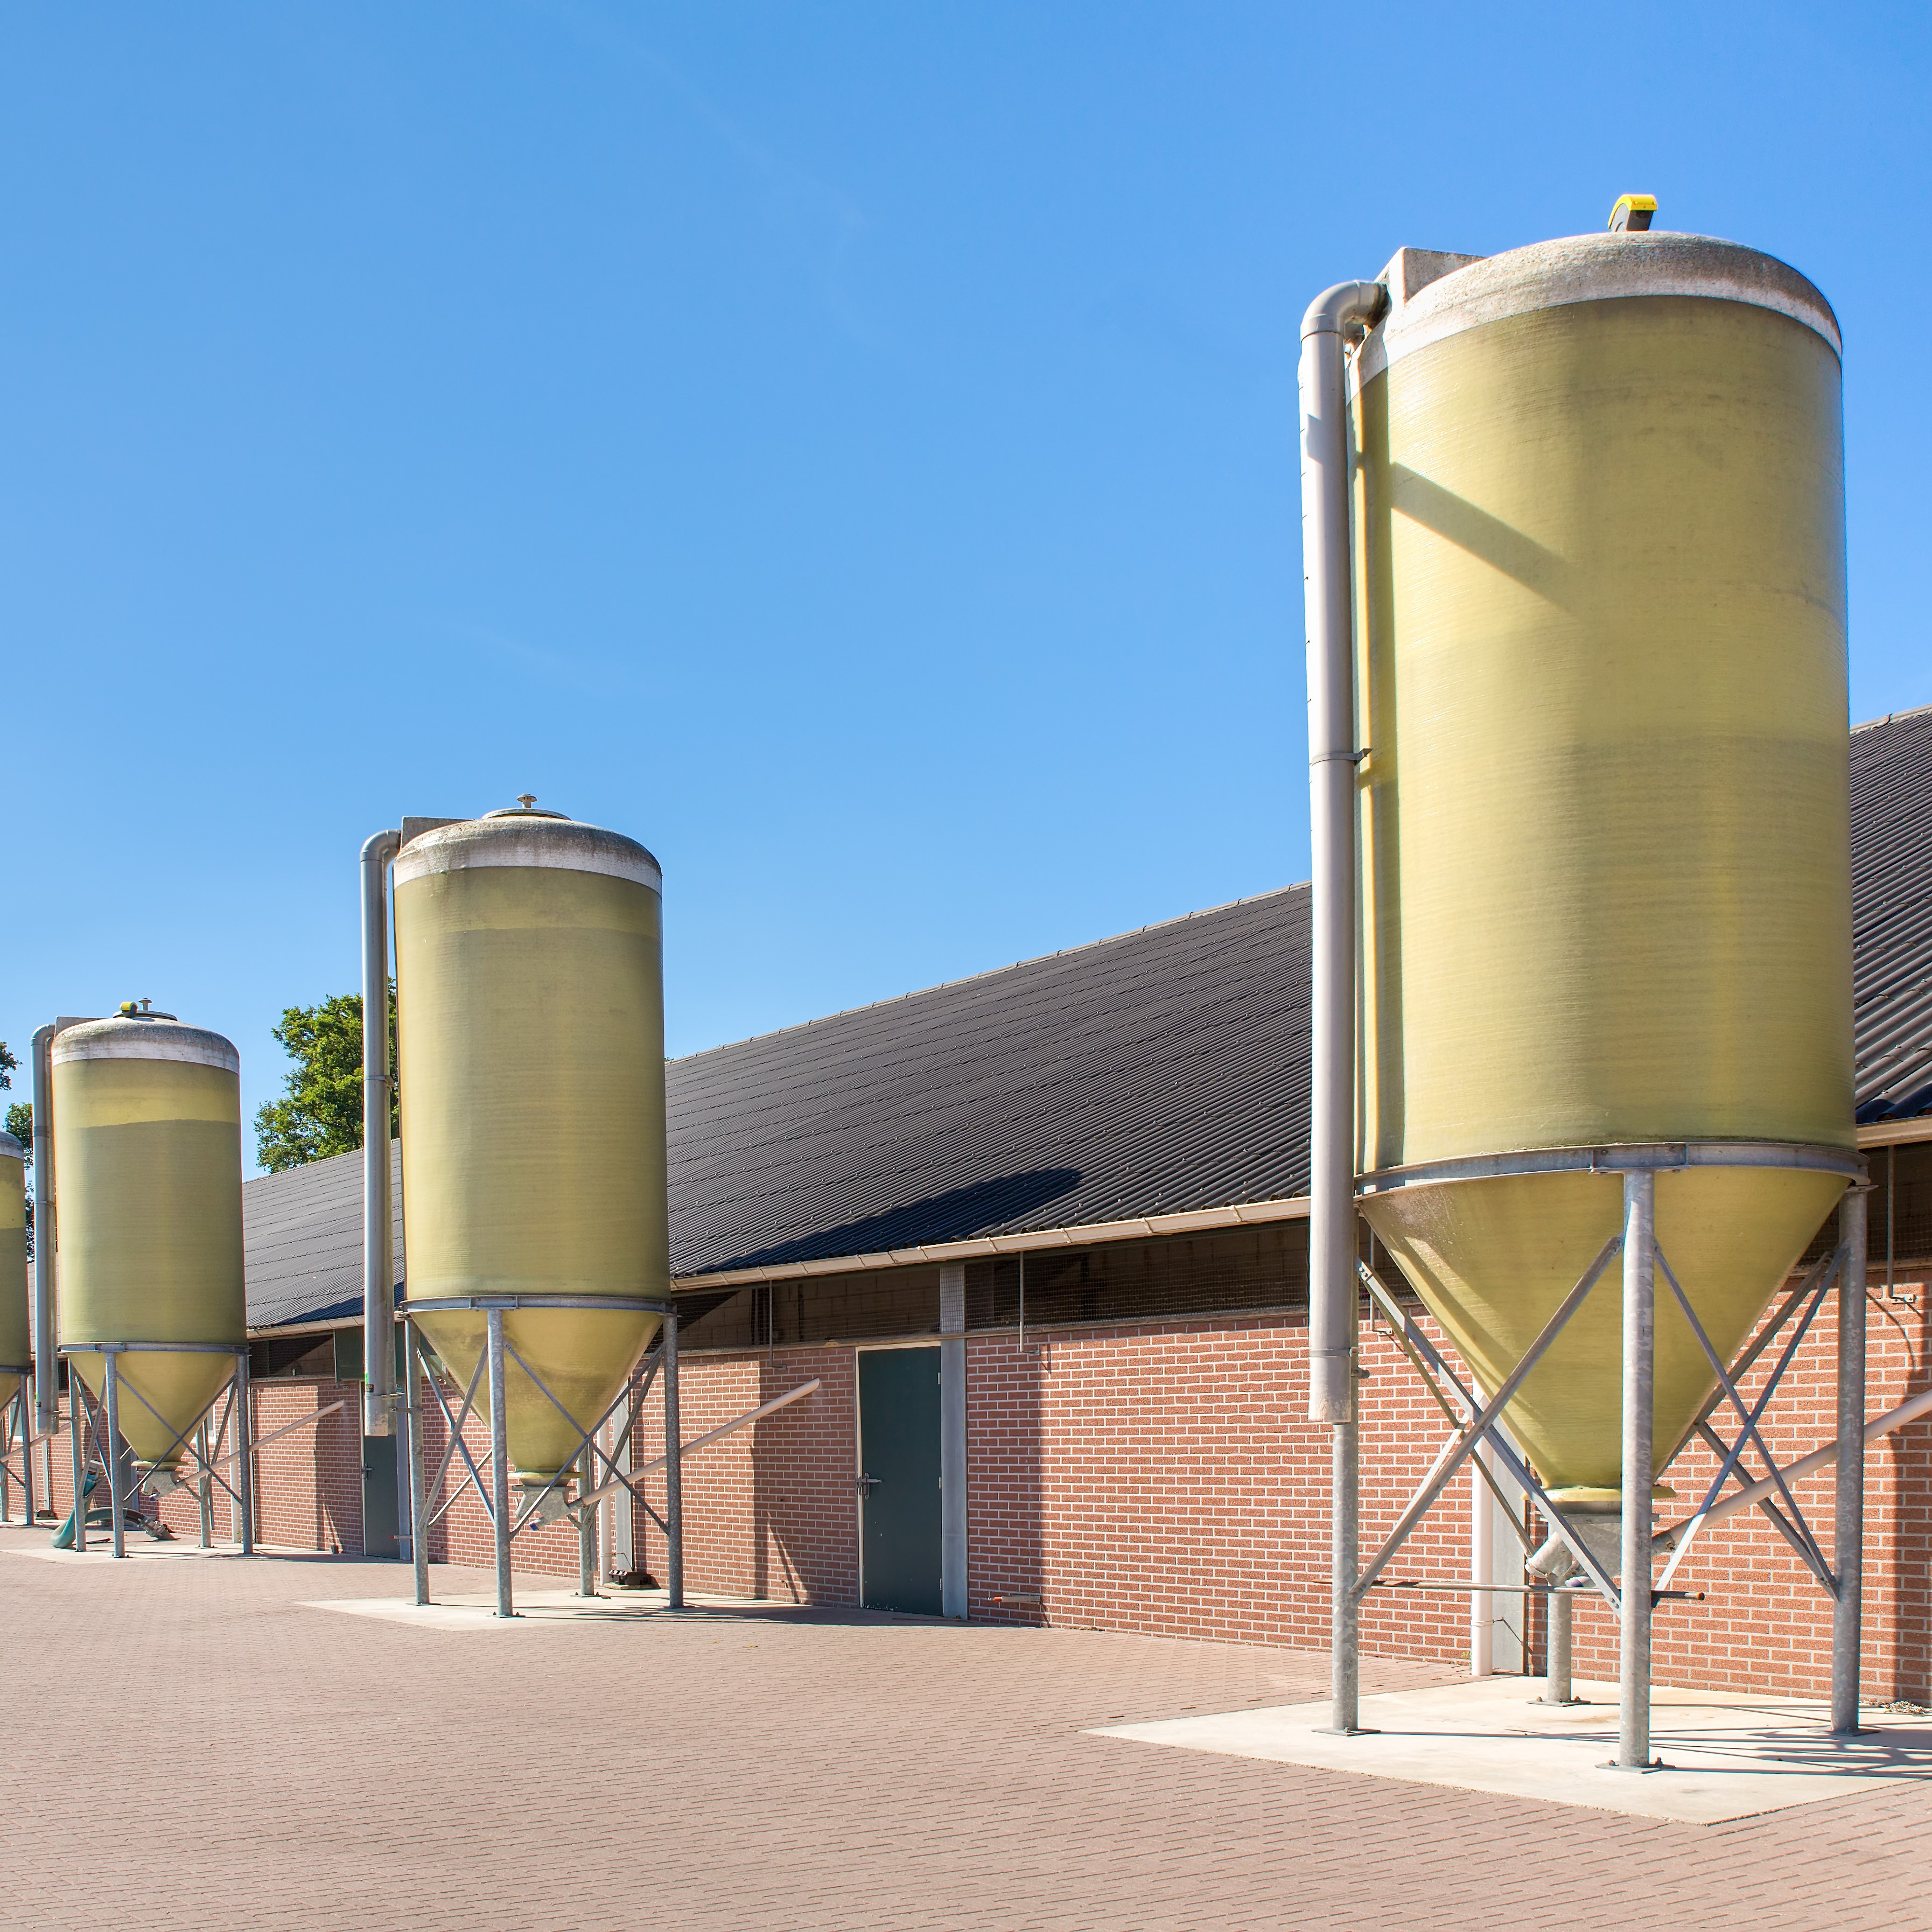 The side of an agricultural building with metal silos present as well.